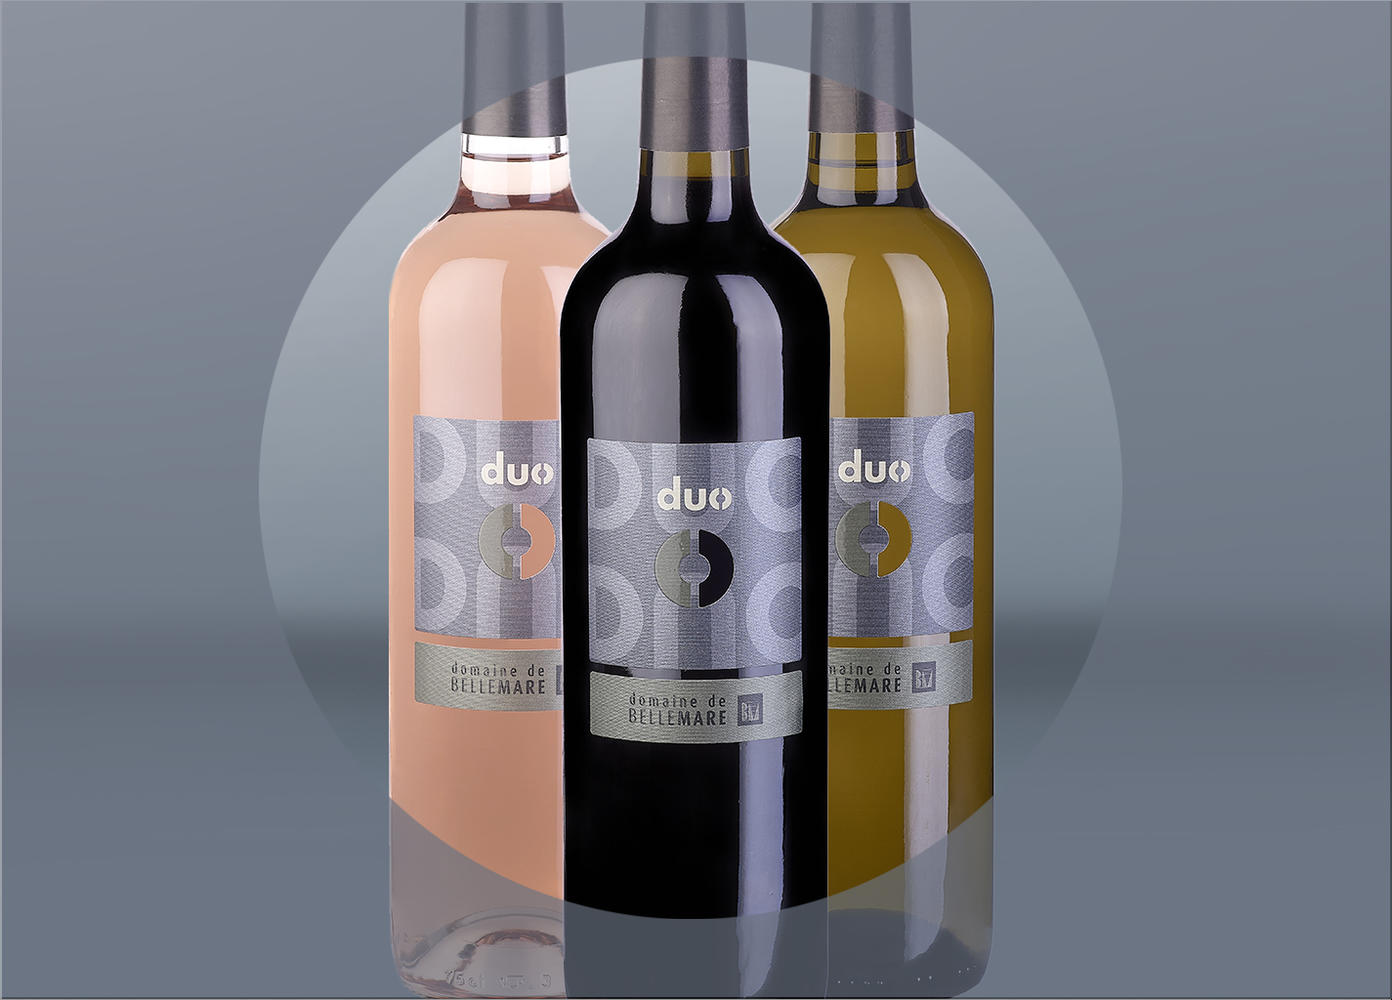 Duo - Red, White & Rosé